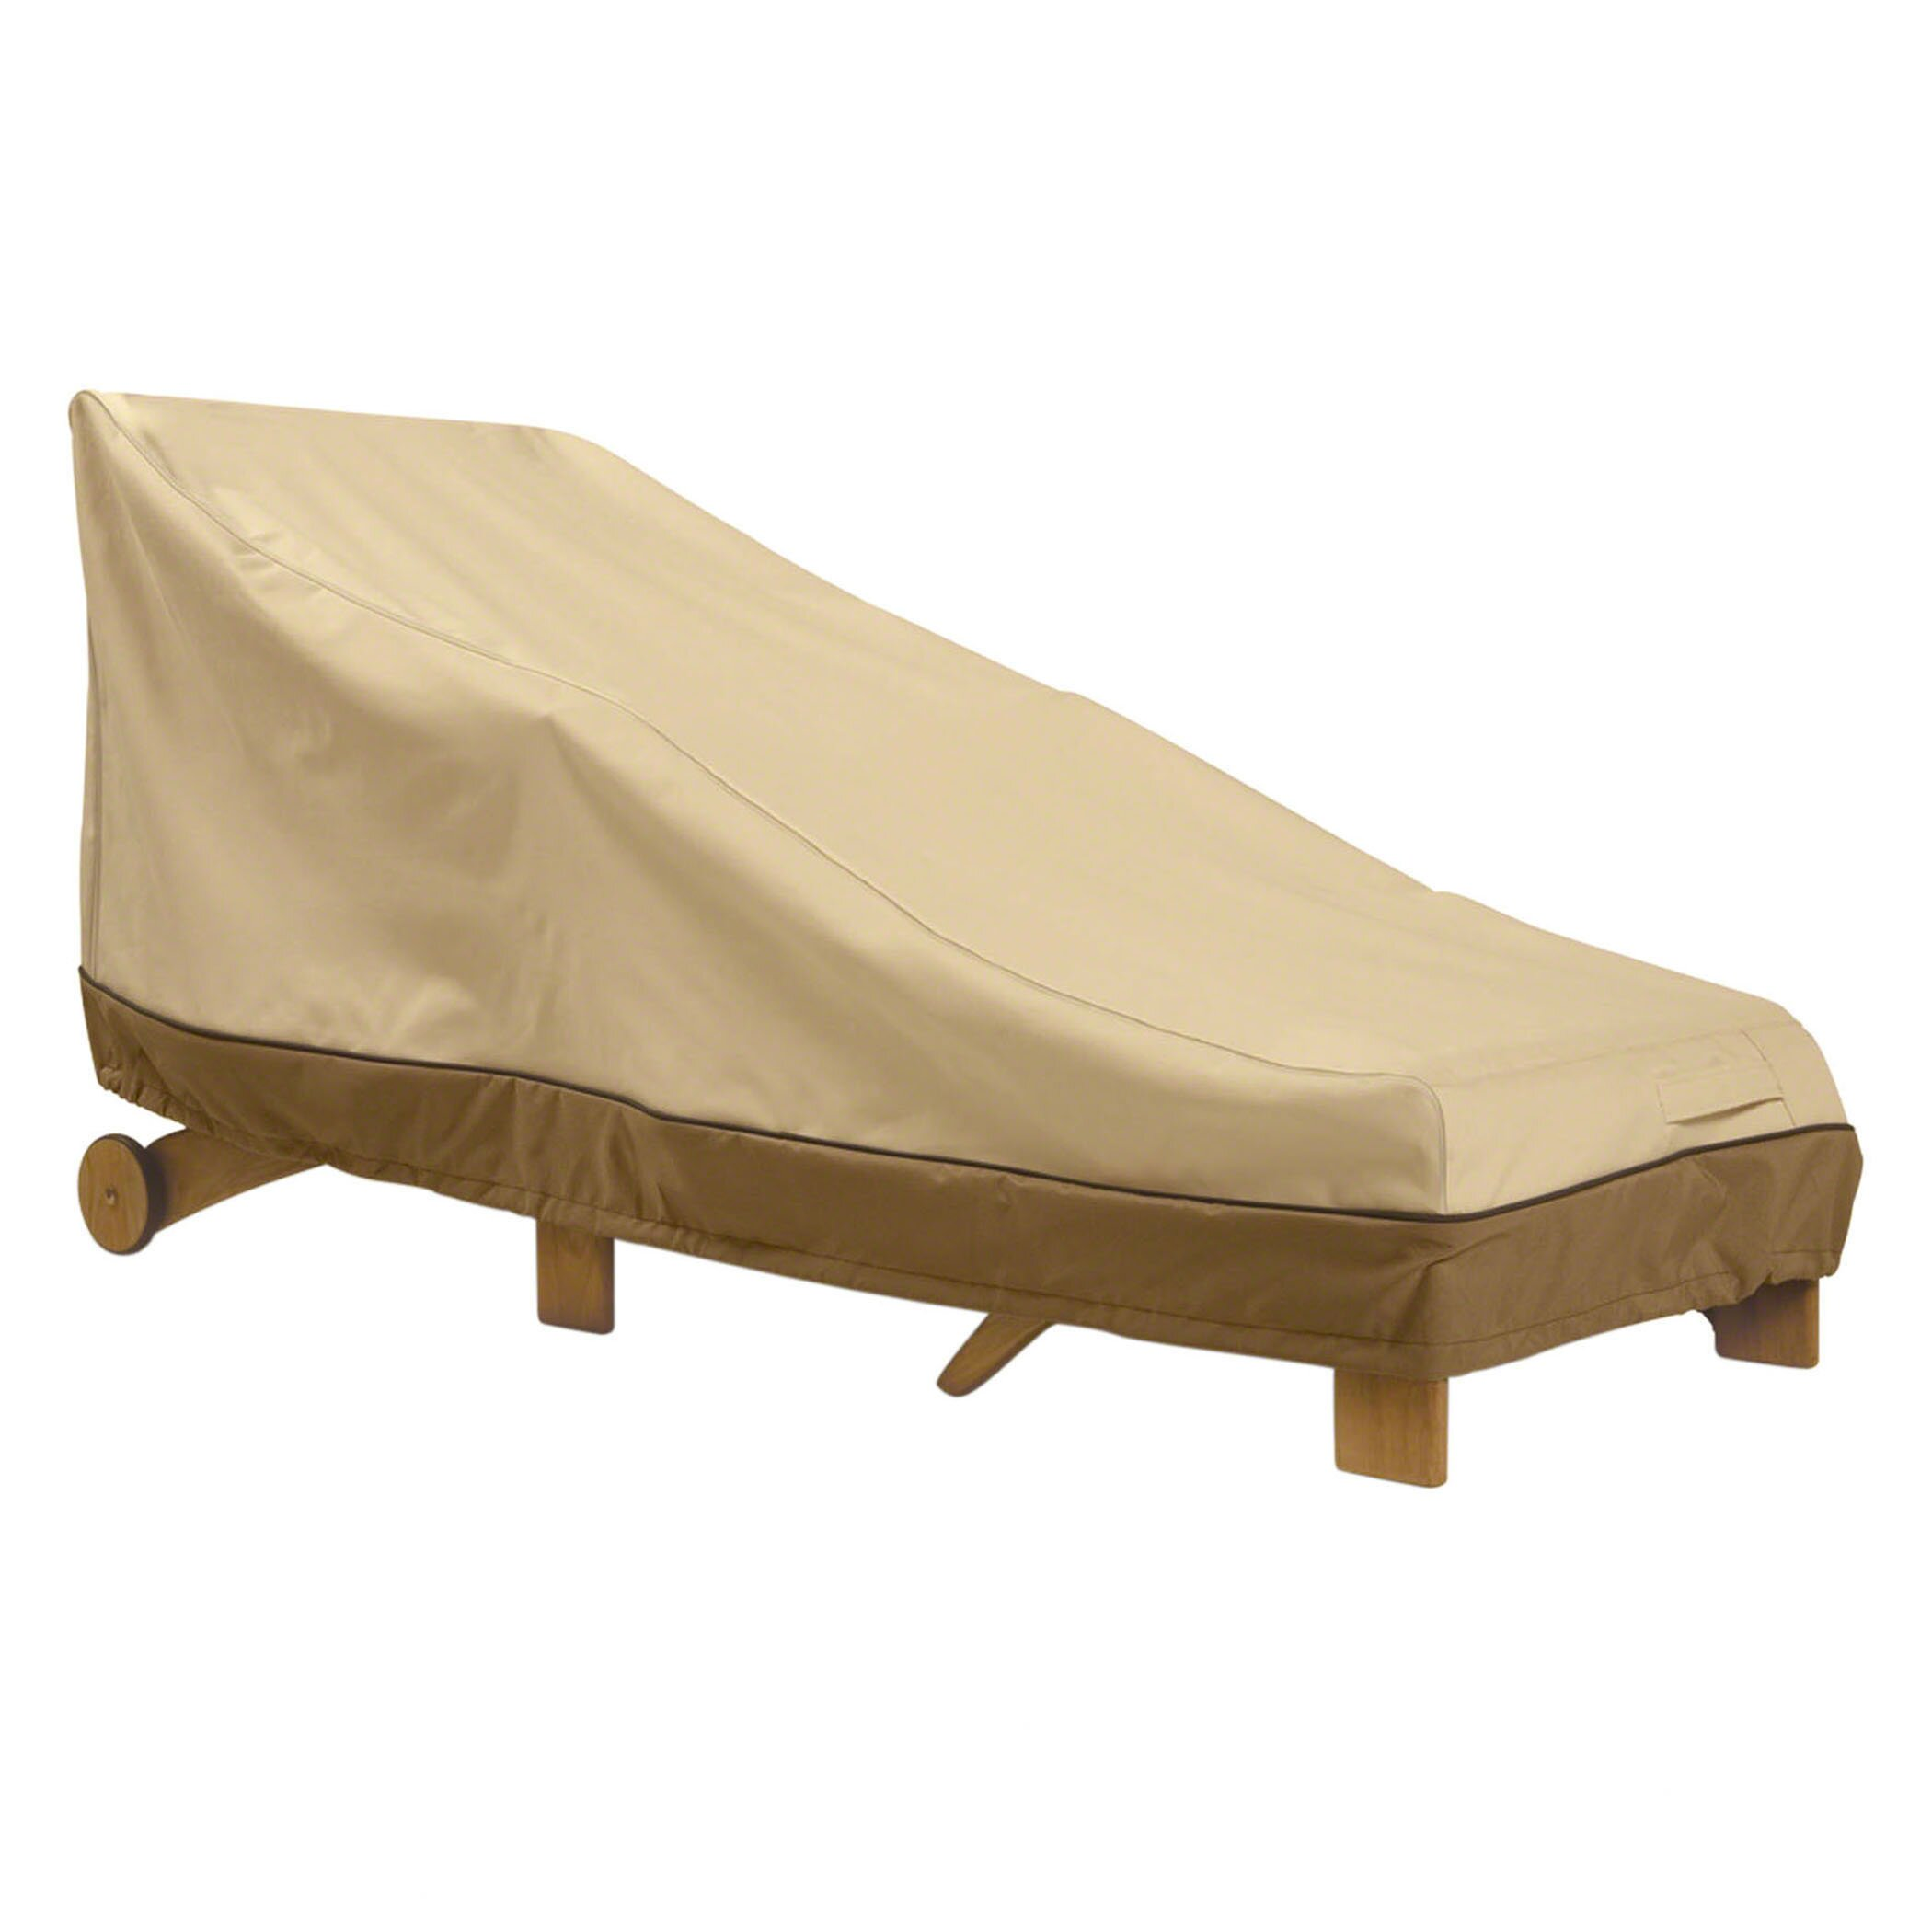 classic accessories chaise lounge cover reviews